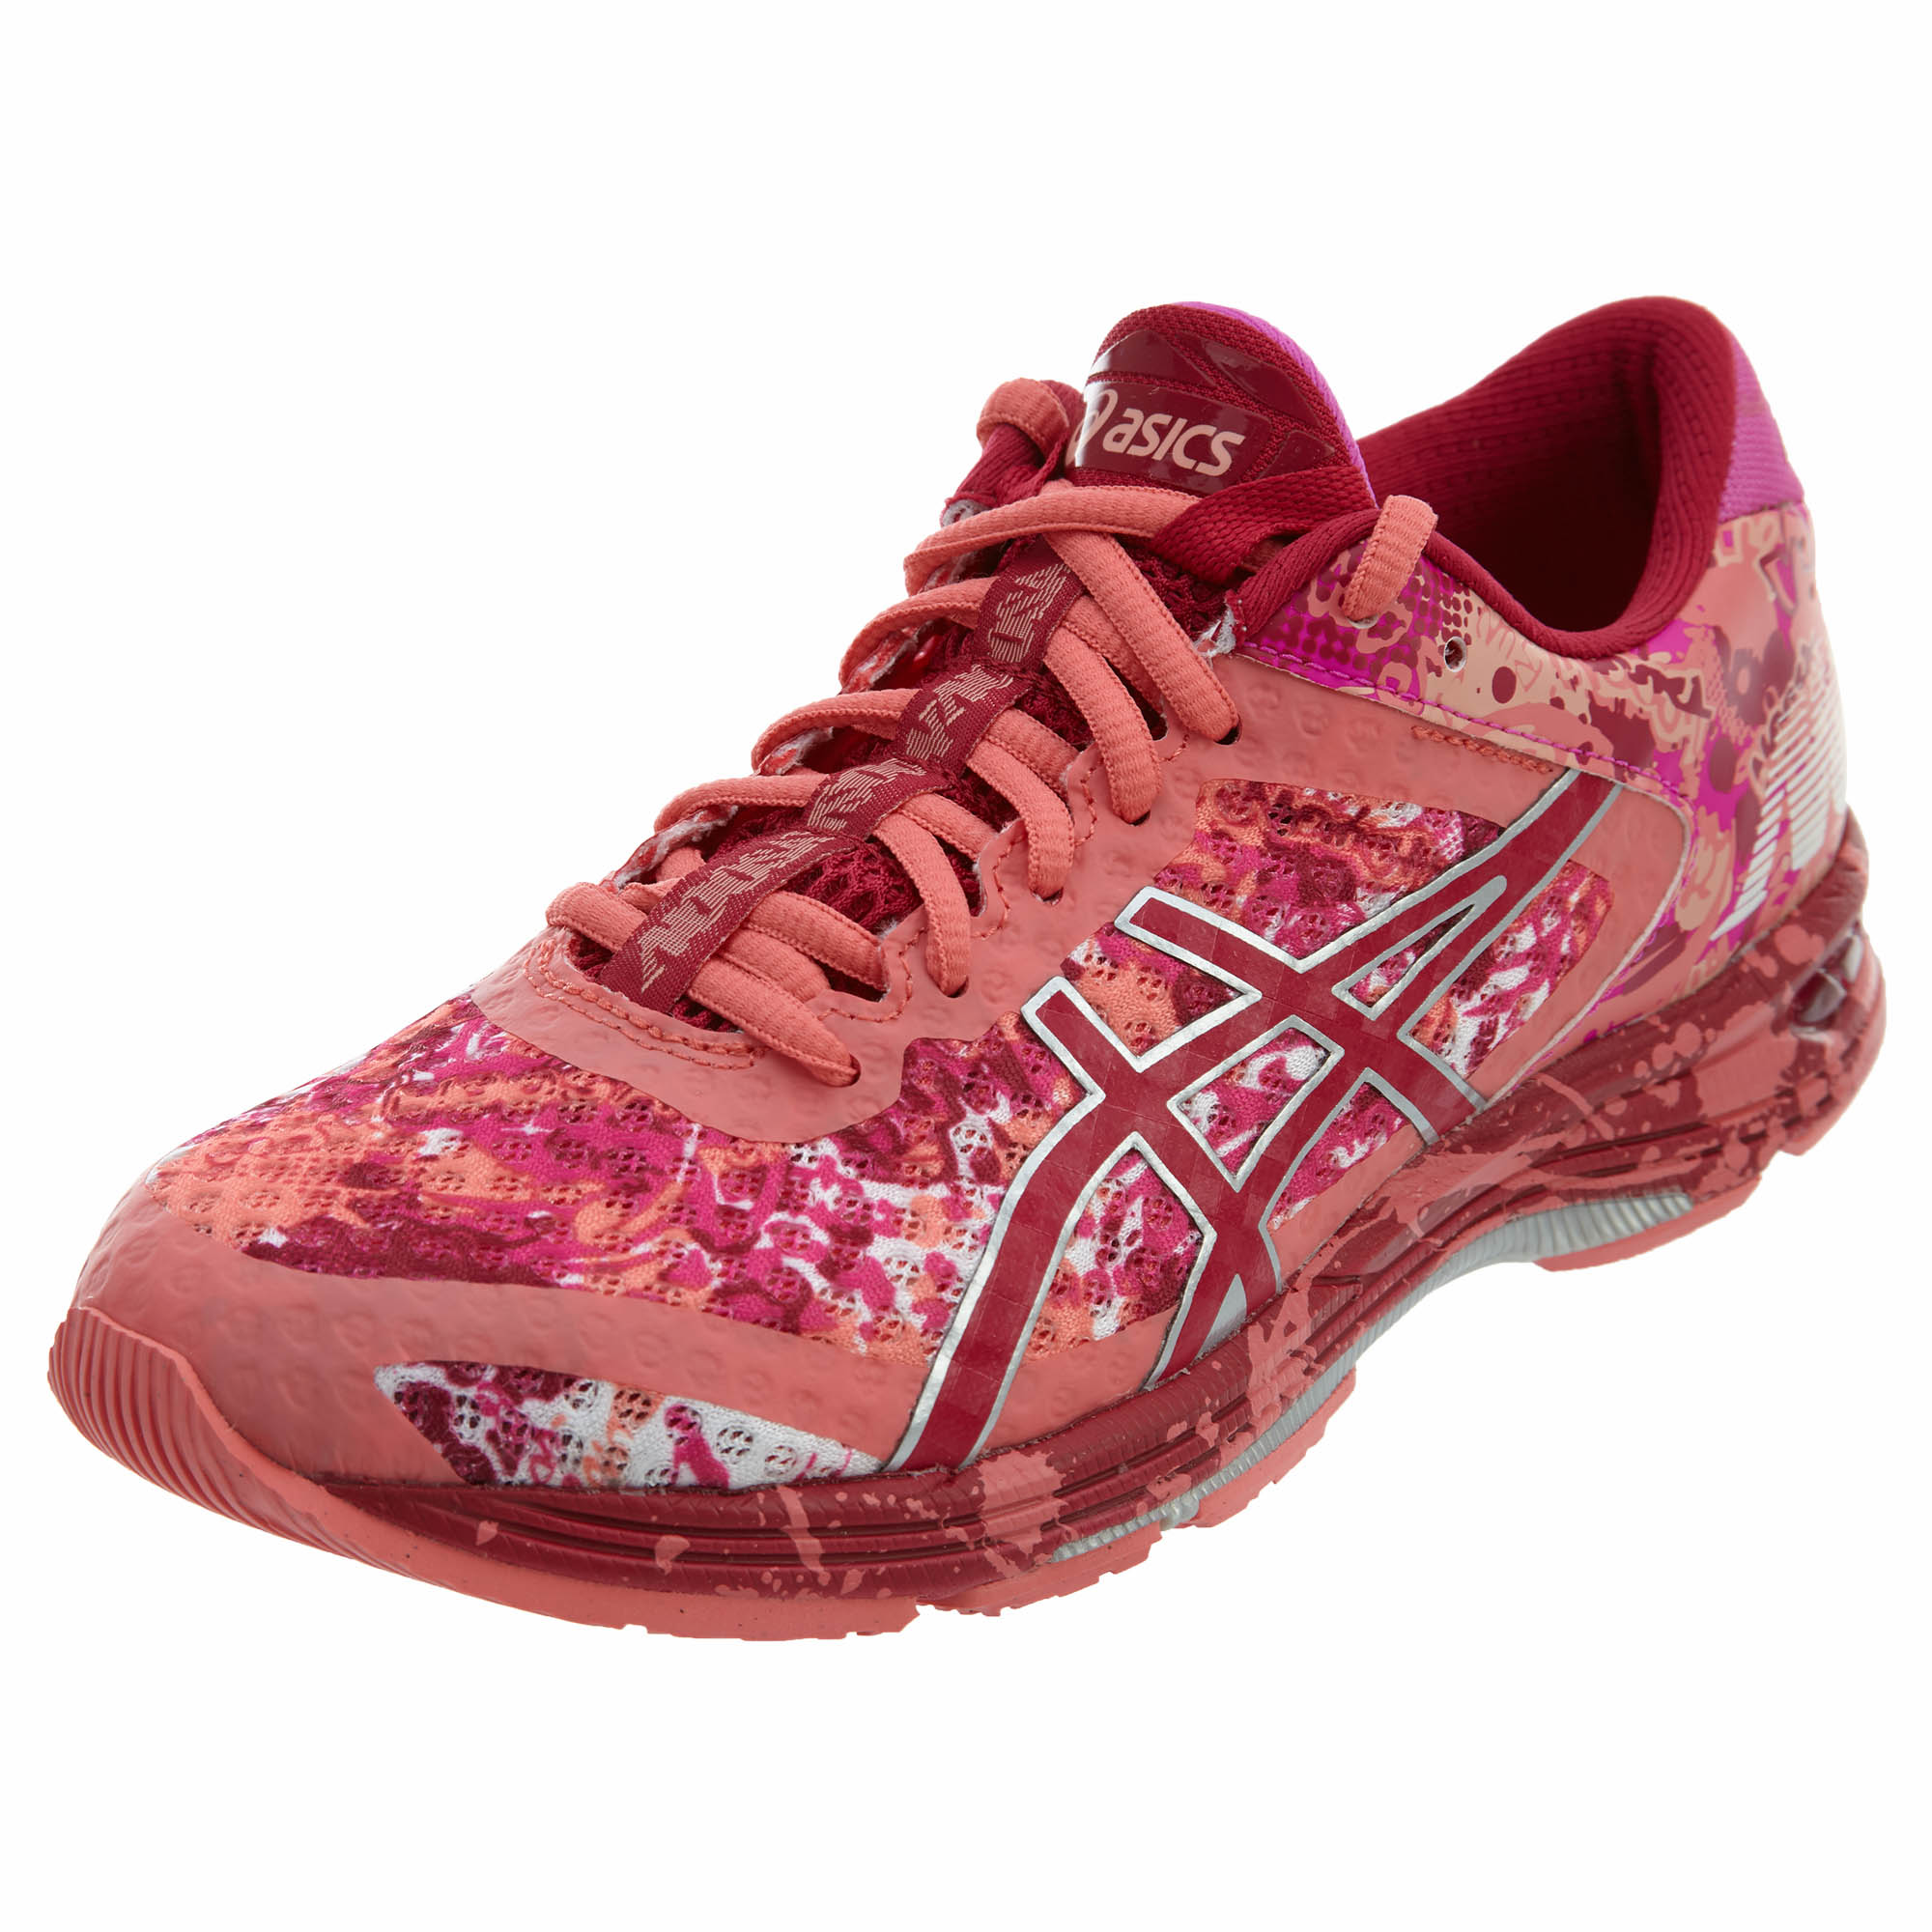 uk availability a7ed4 29034 ASICS Womens Gel-Noosa Tri 11 Running Shoes